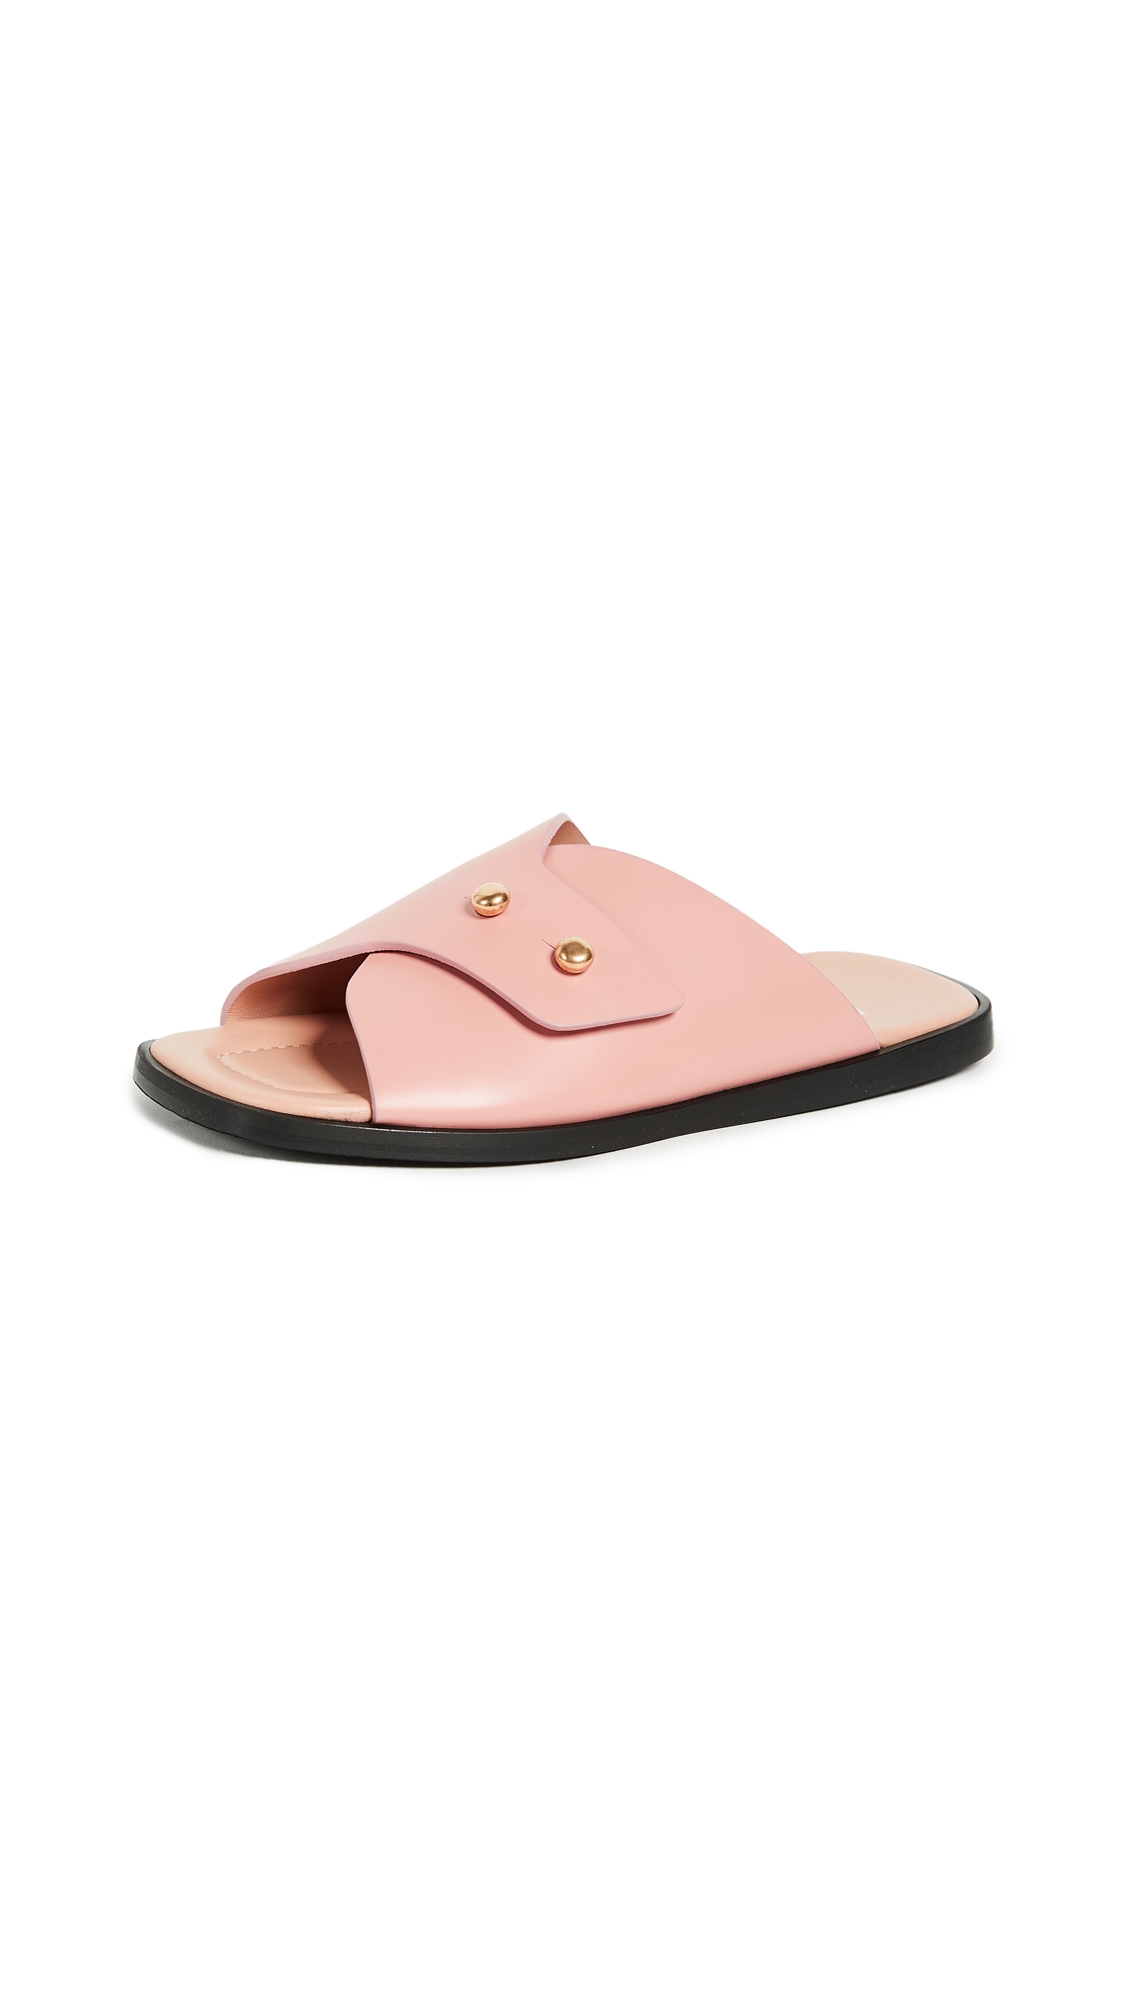 Acne Studios Jilly Slides - Pink